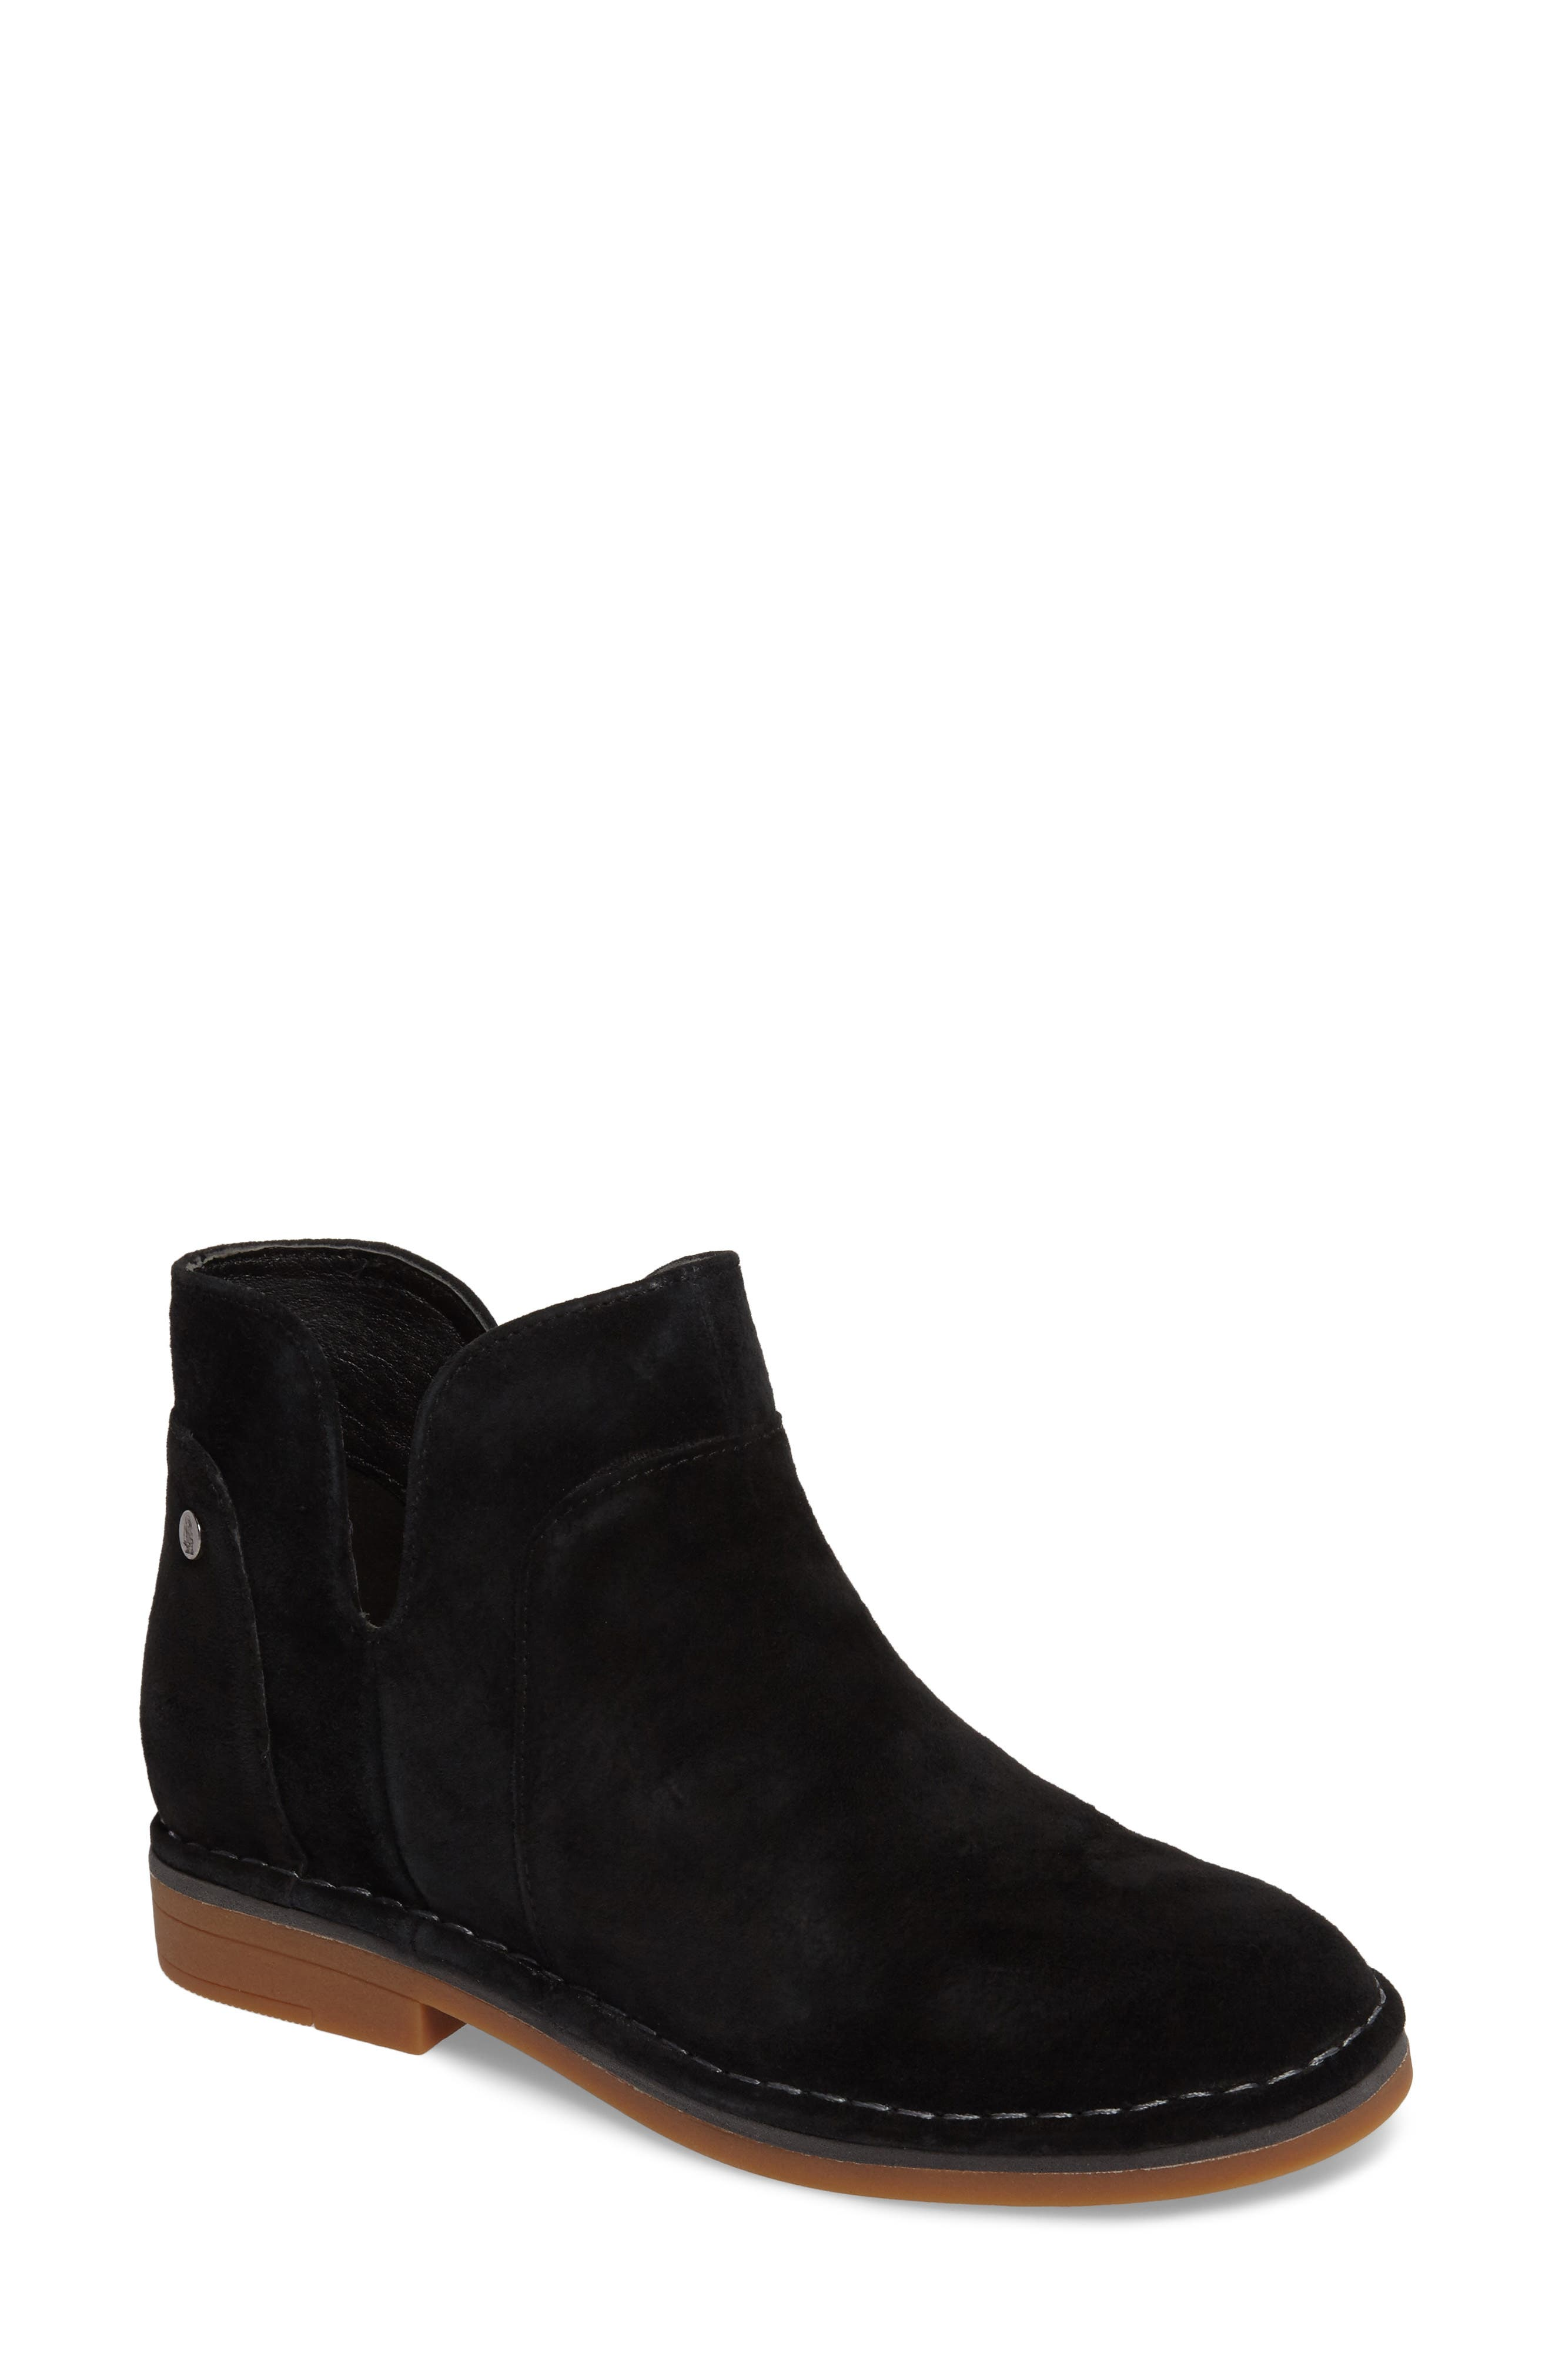 Claudia Catelyn Bootie,                         Main,                         color,